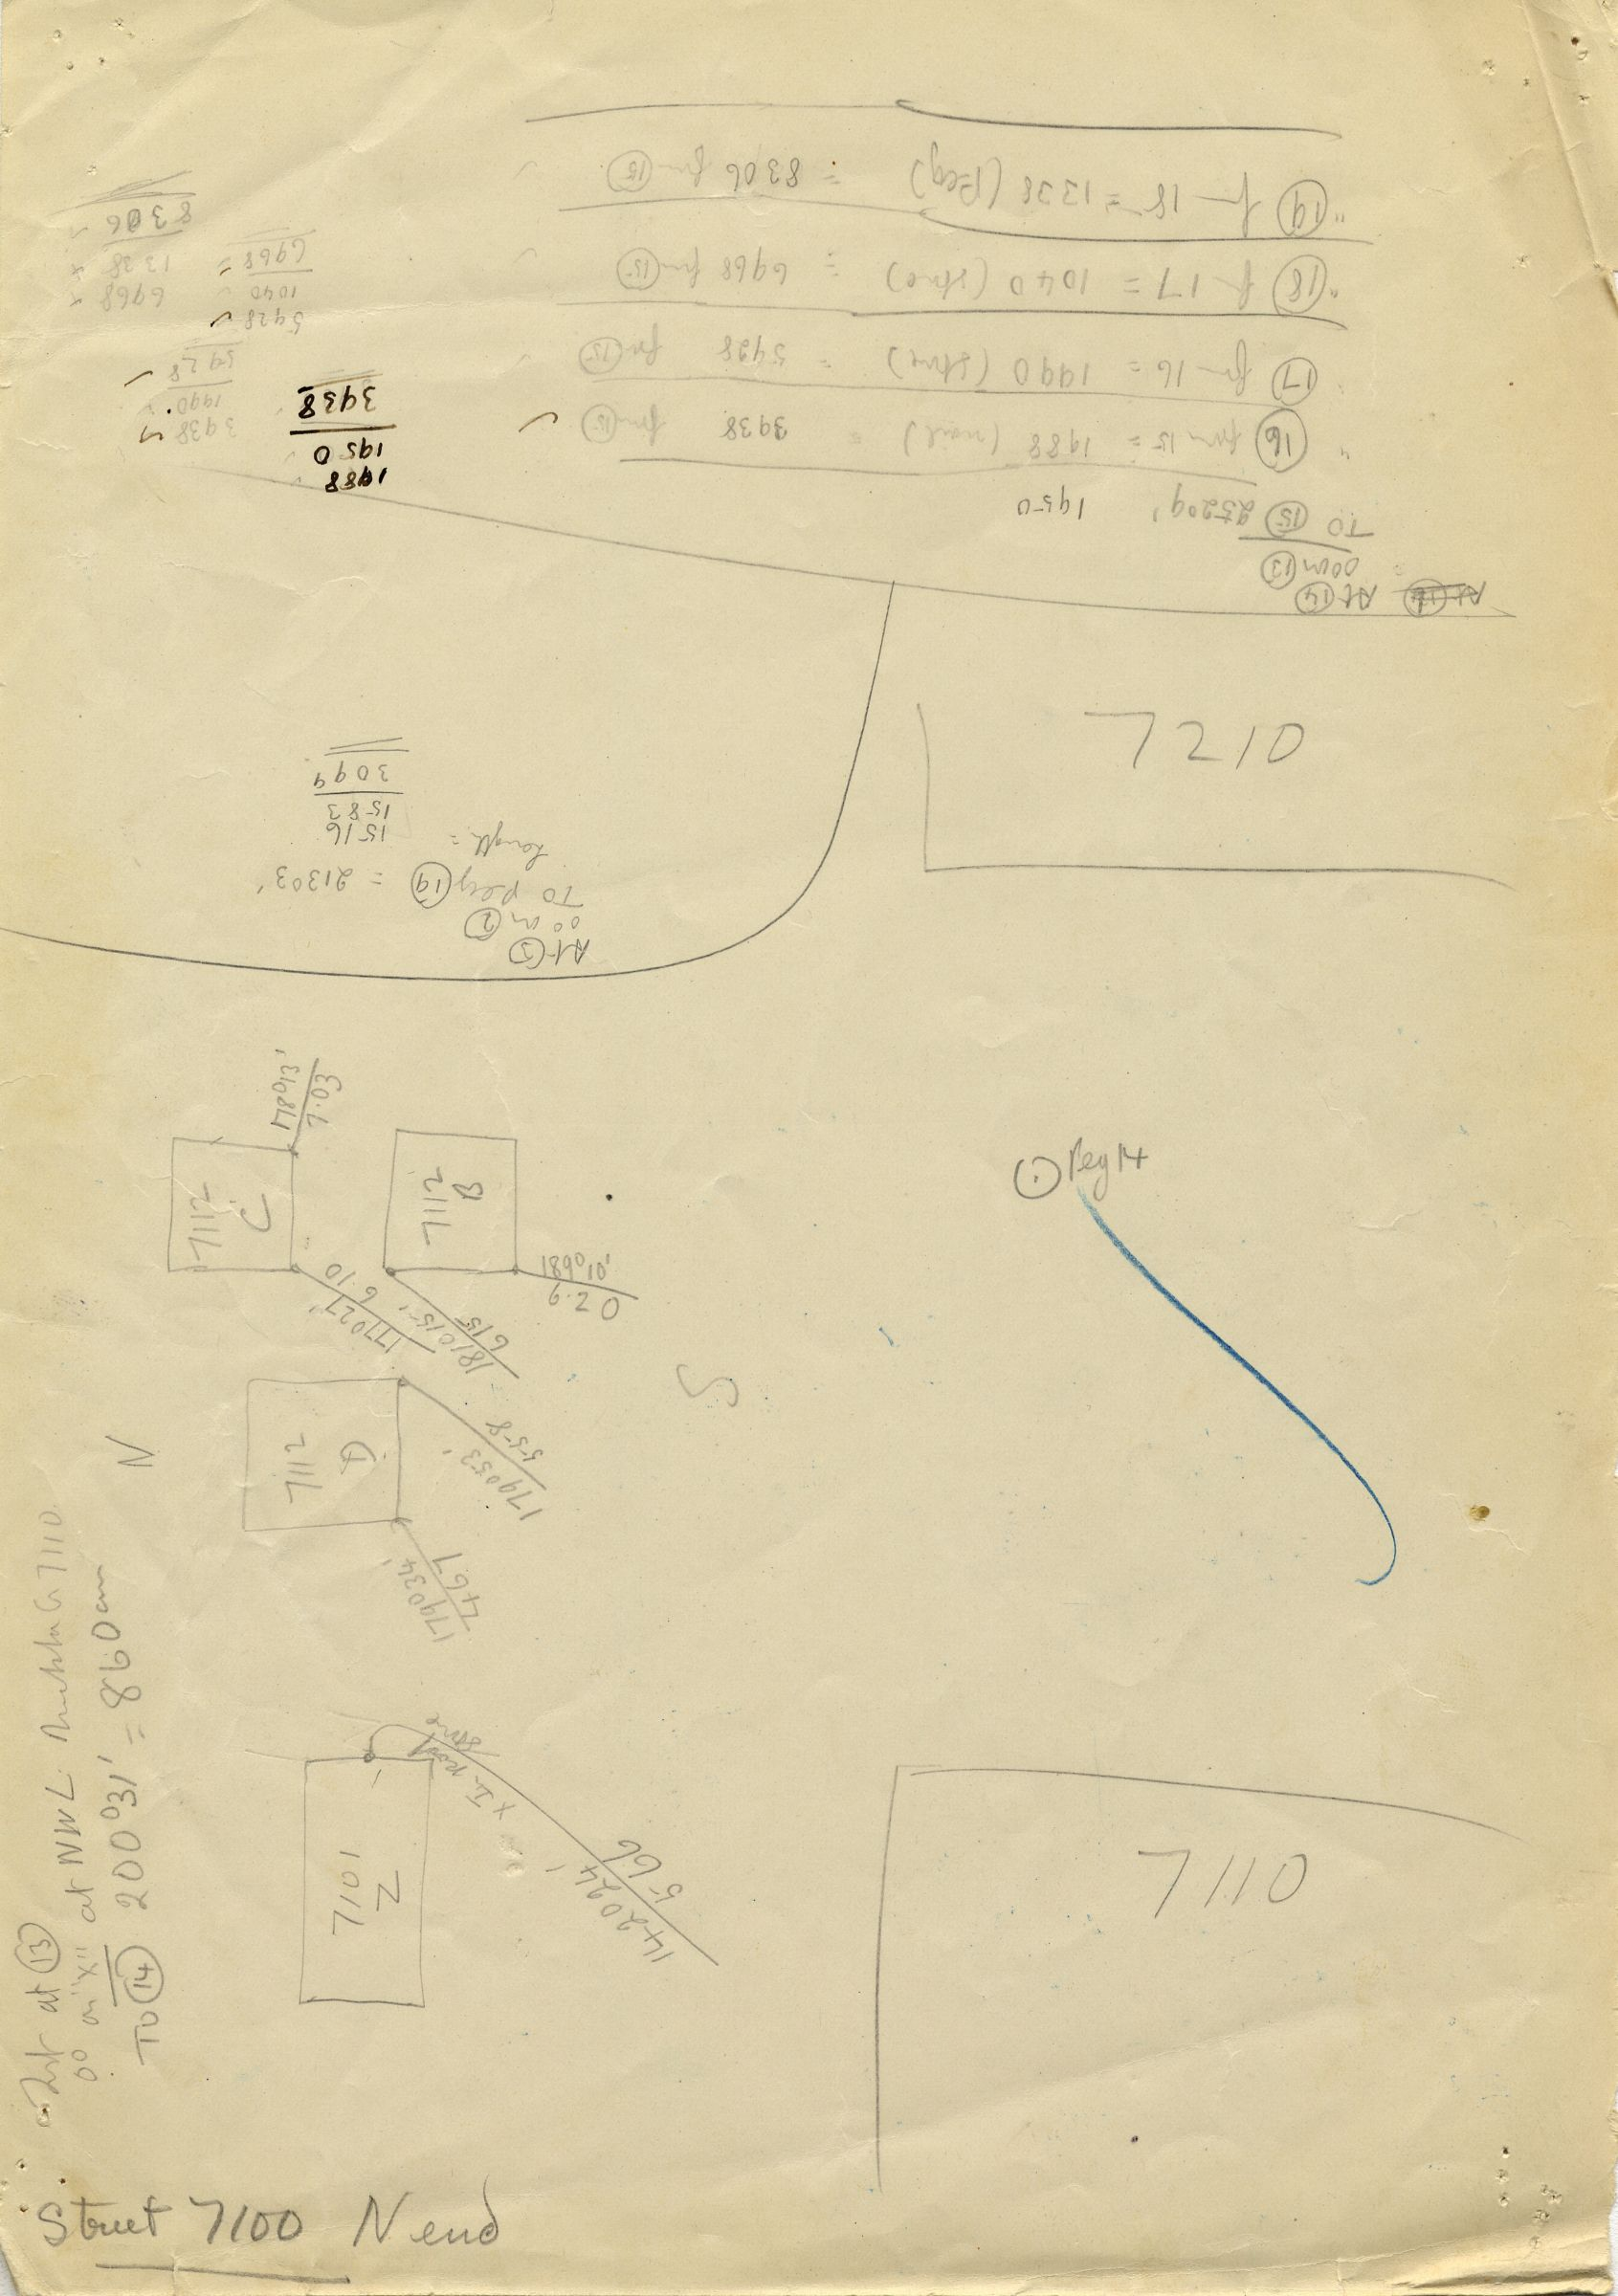 Maps and plans: Street G 7100